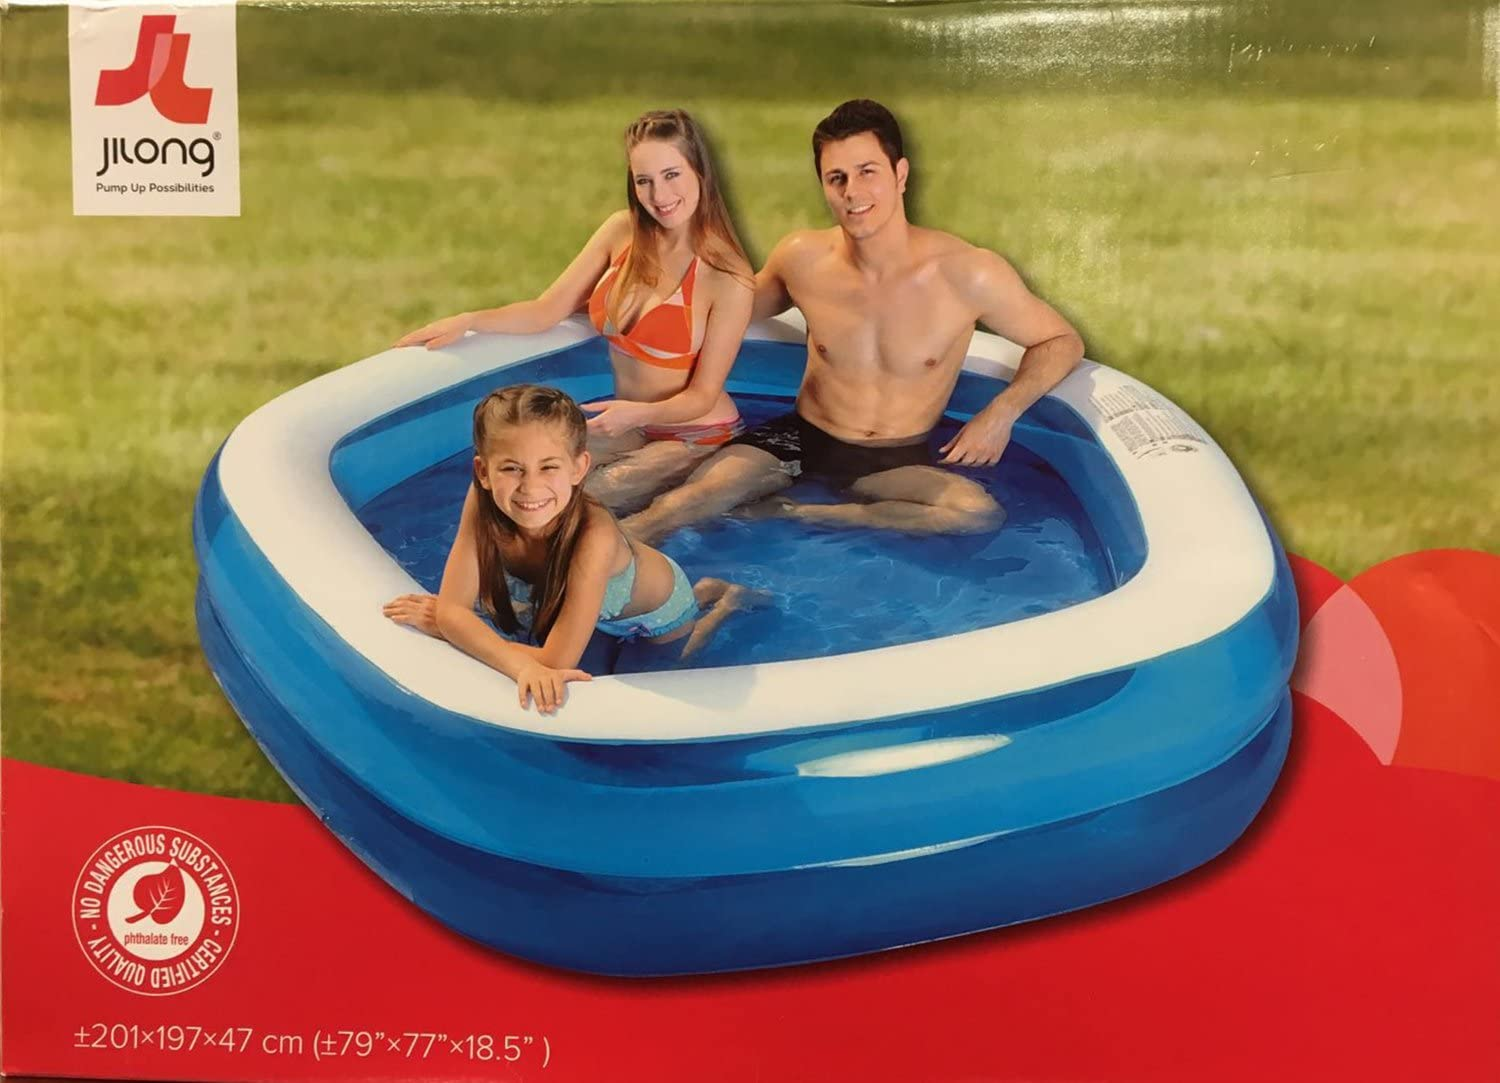 Piscina hinchable Familiar Octogonal 201 cm x 197 cm x 47 cm ...